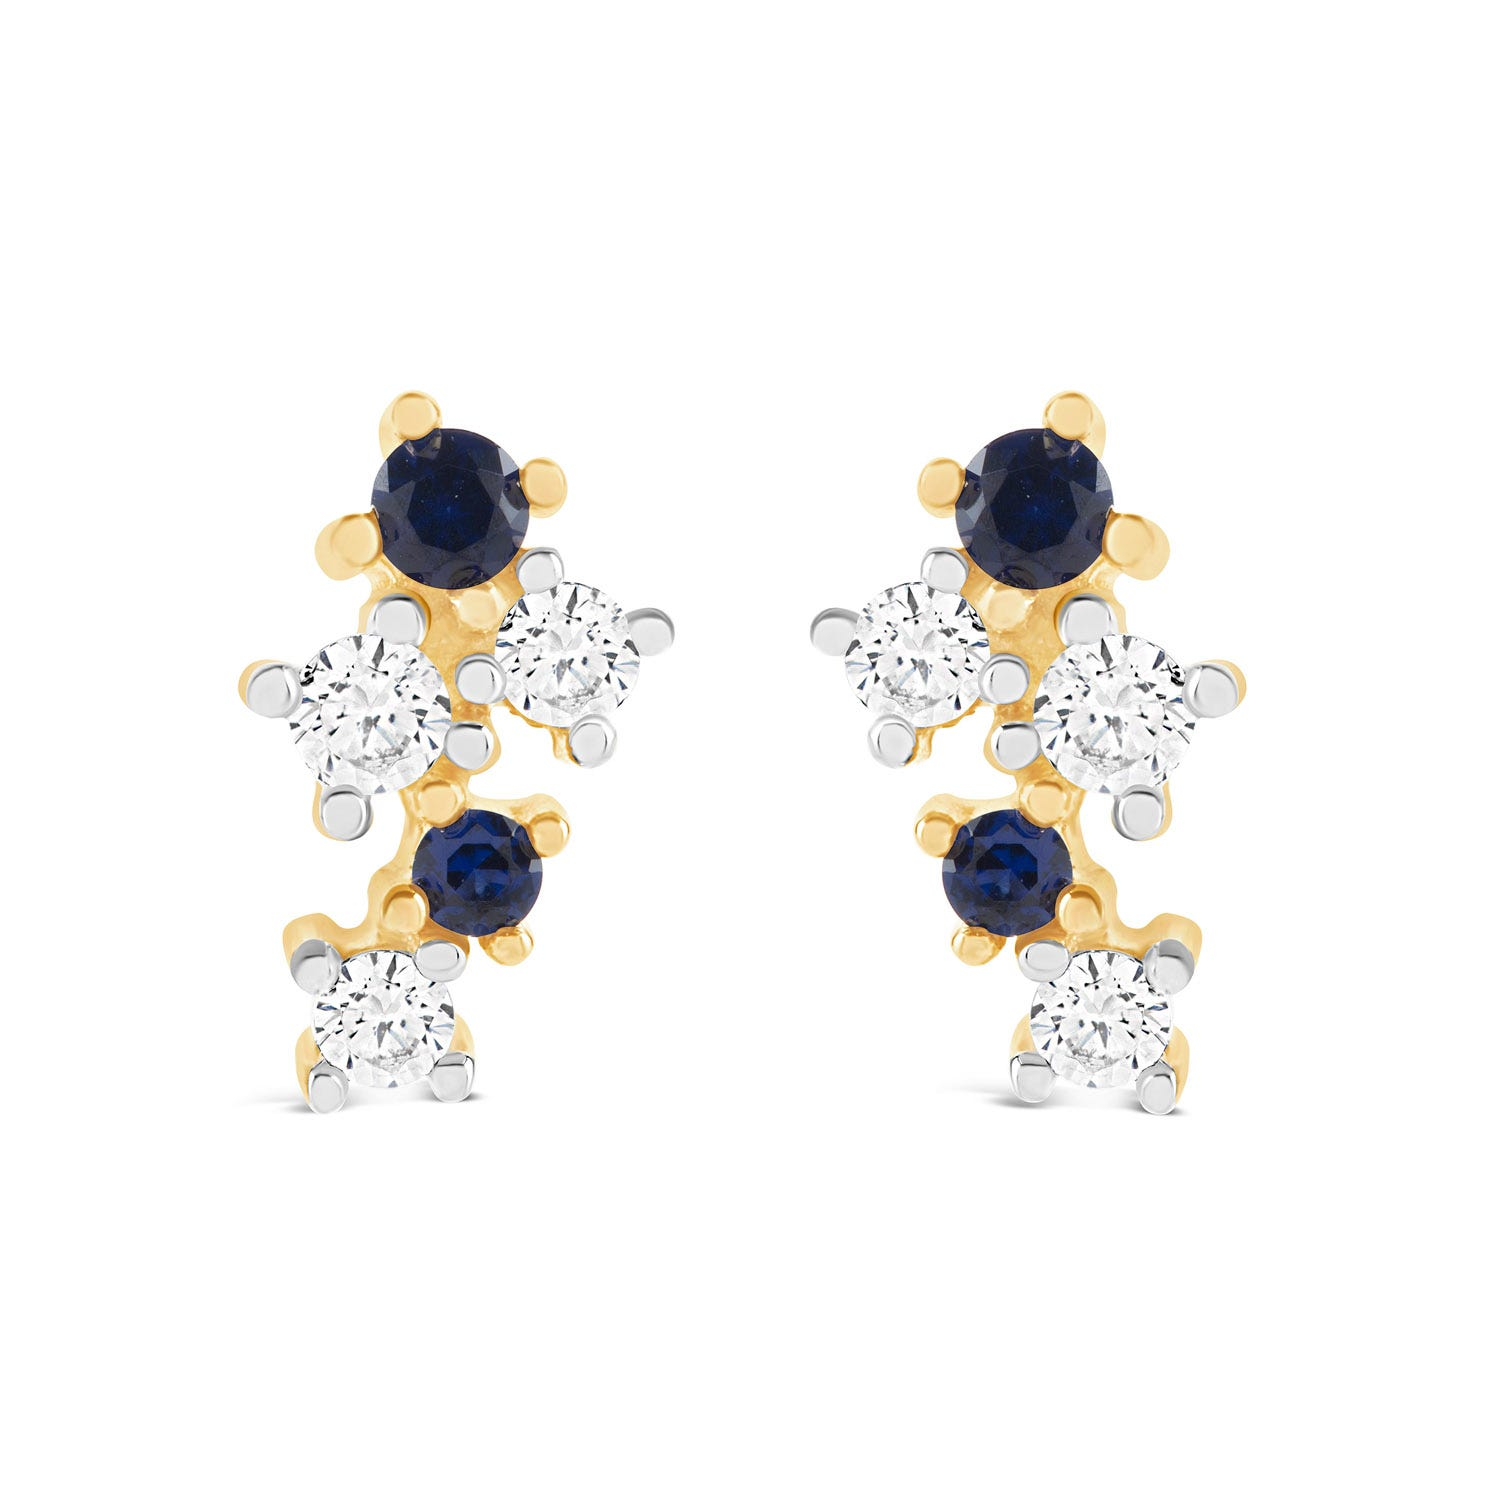 9ct Yellow Gold Sapphire and Cubic Zirconia Spray Stud Earrings